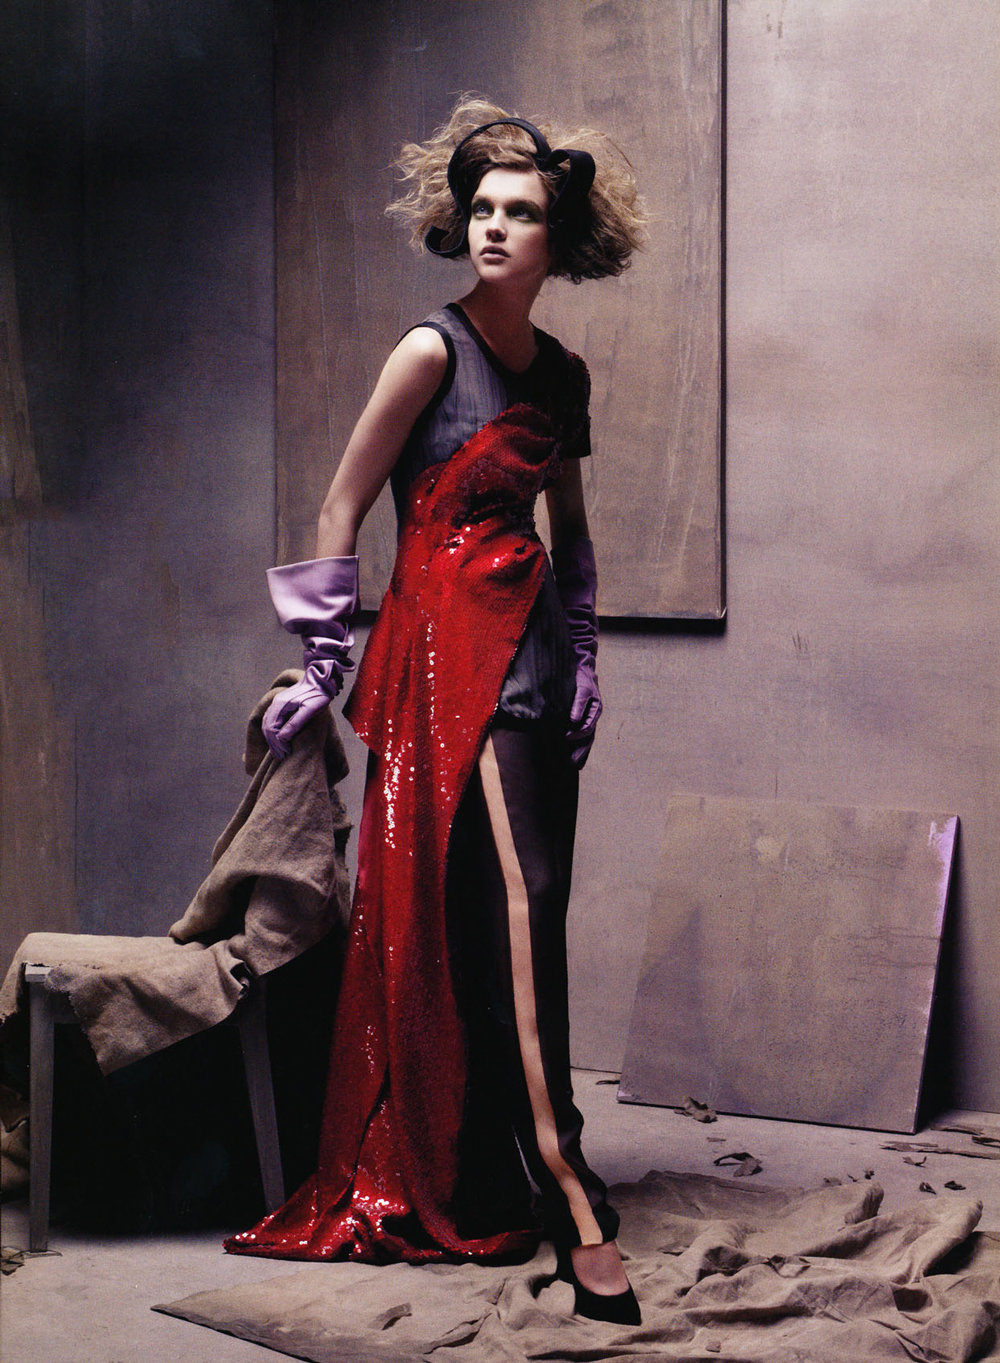 Peerless Natalia Vodianova wearing Marc Jacobs in Vogue US January 2008 (photography: Steven Meisel, styling: Grace Coddington) via www.fashionedbylove.co.uk